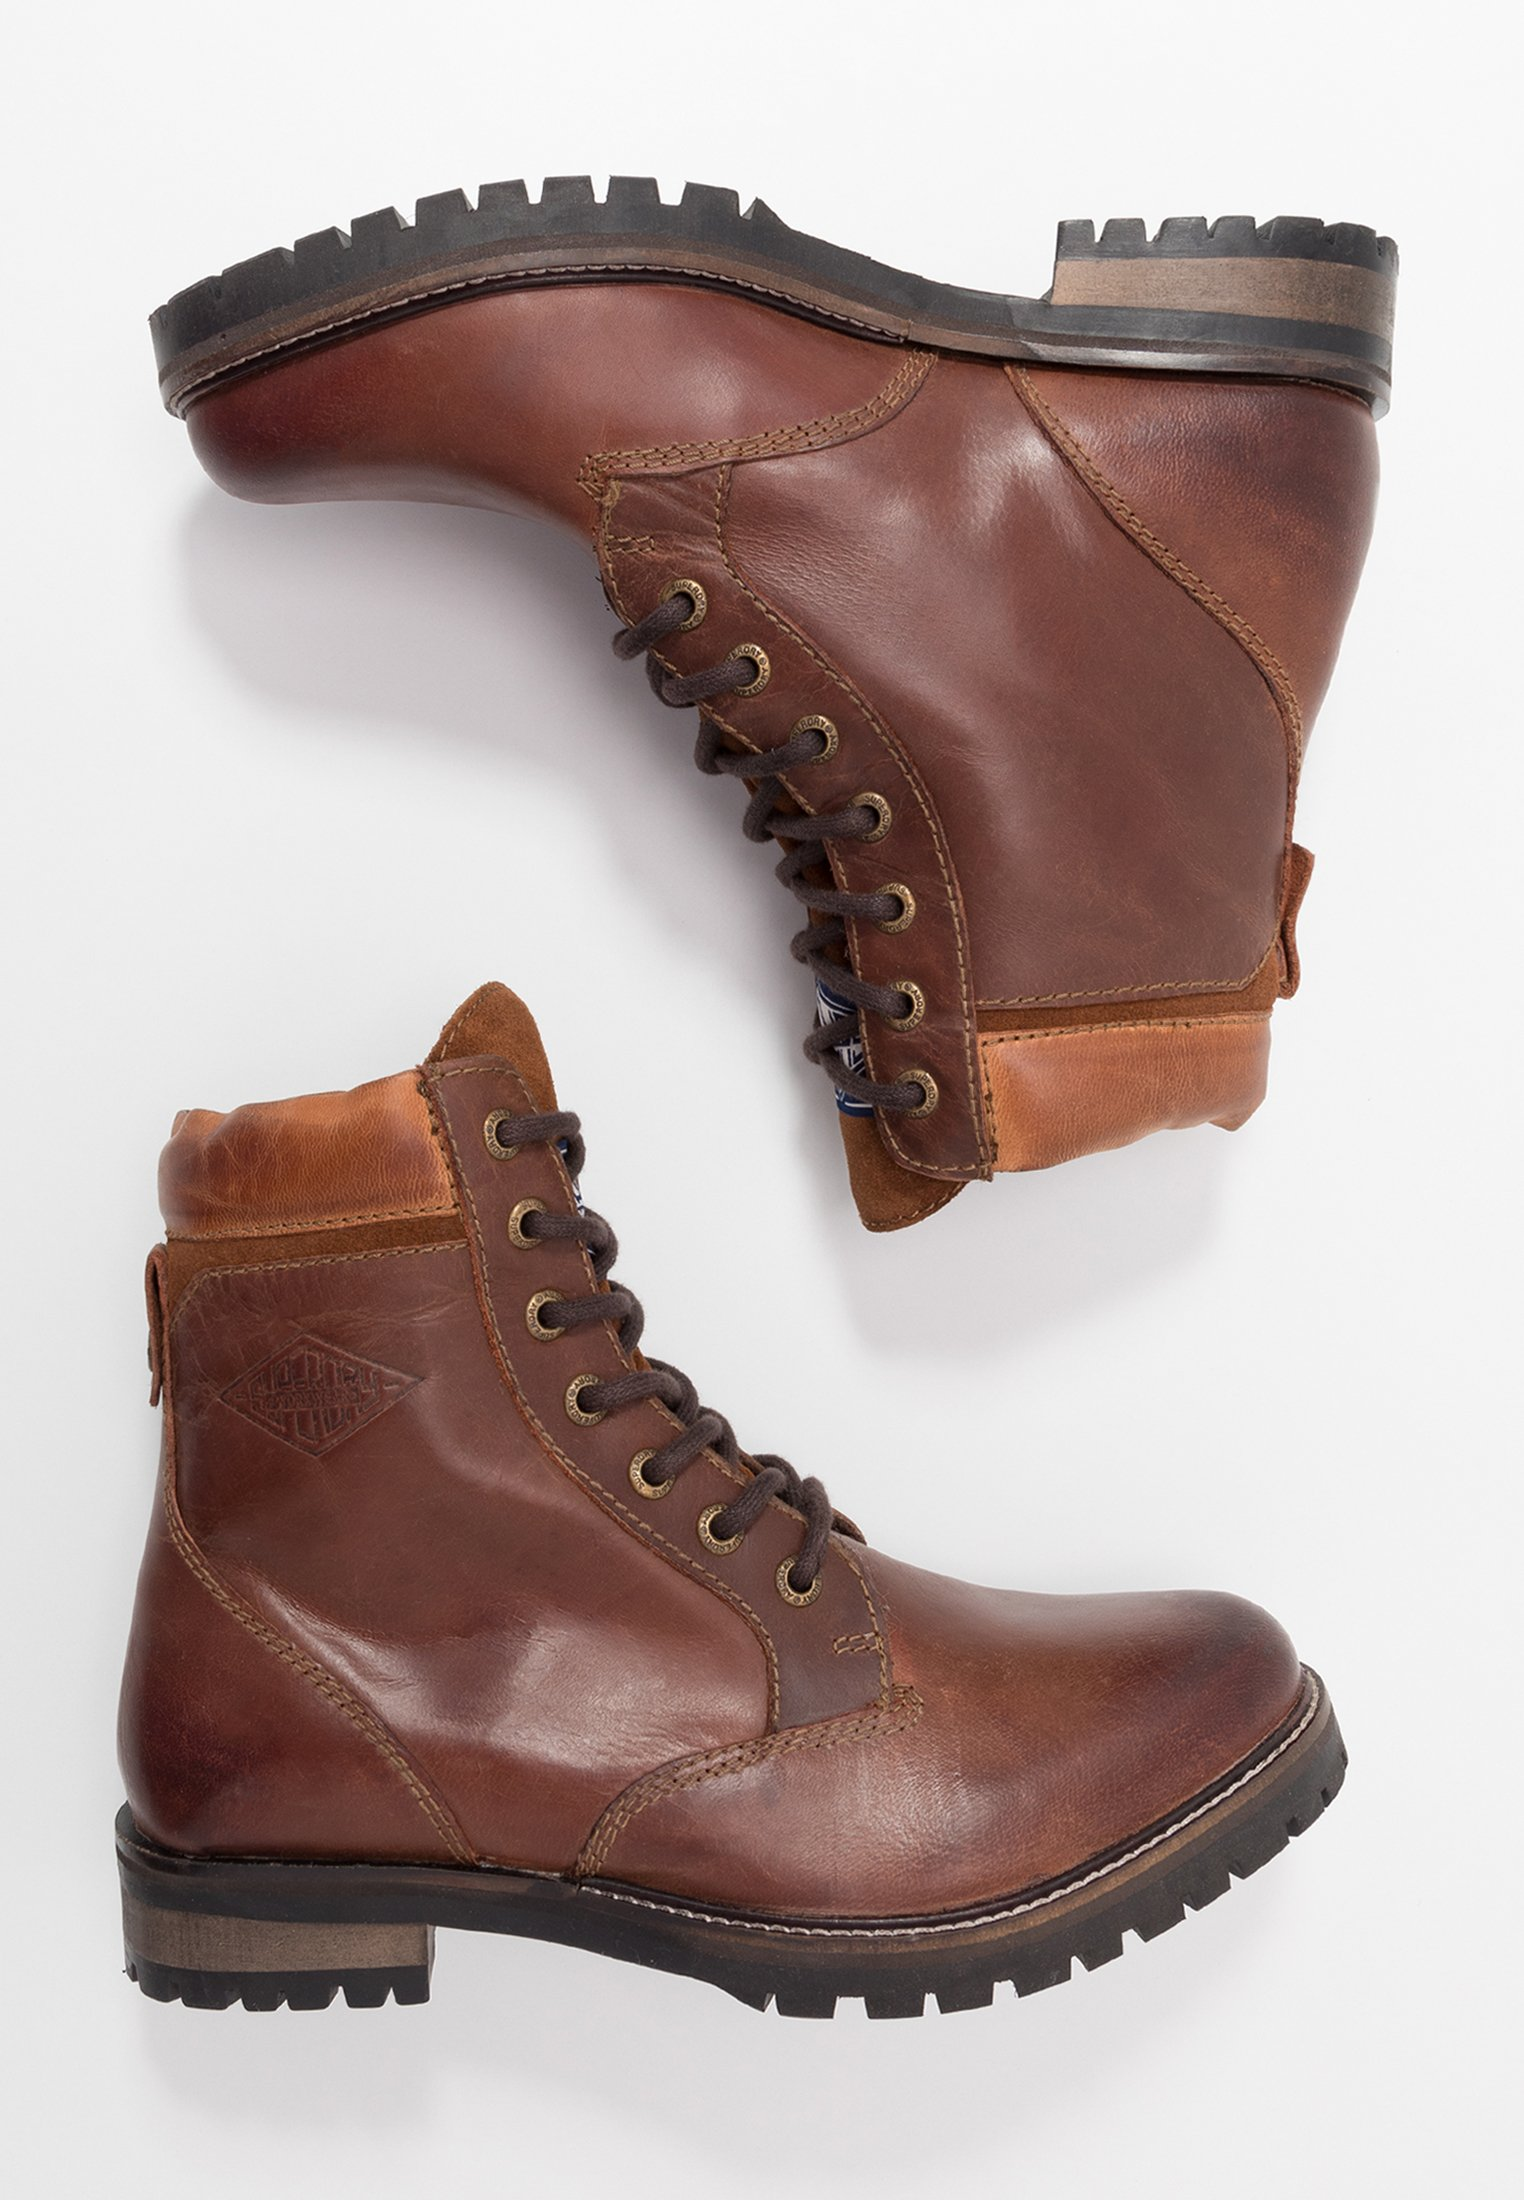 Superdry Ripley Lace Up Boot - Snørestøvletter Red Brown